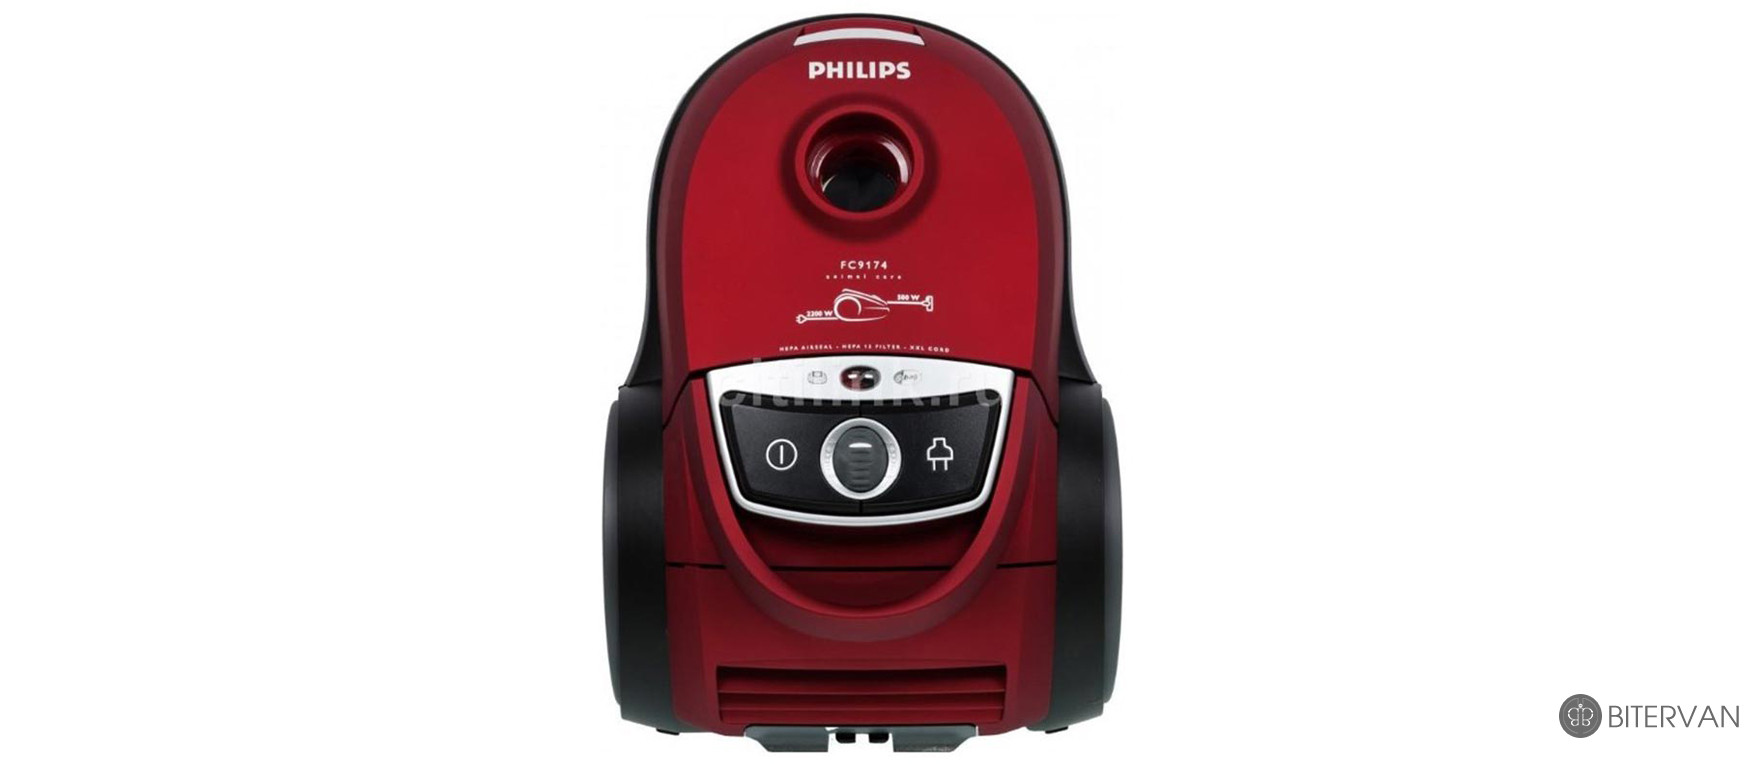 PHILIPS Vacuum Cleaner FC9174